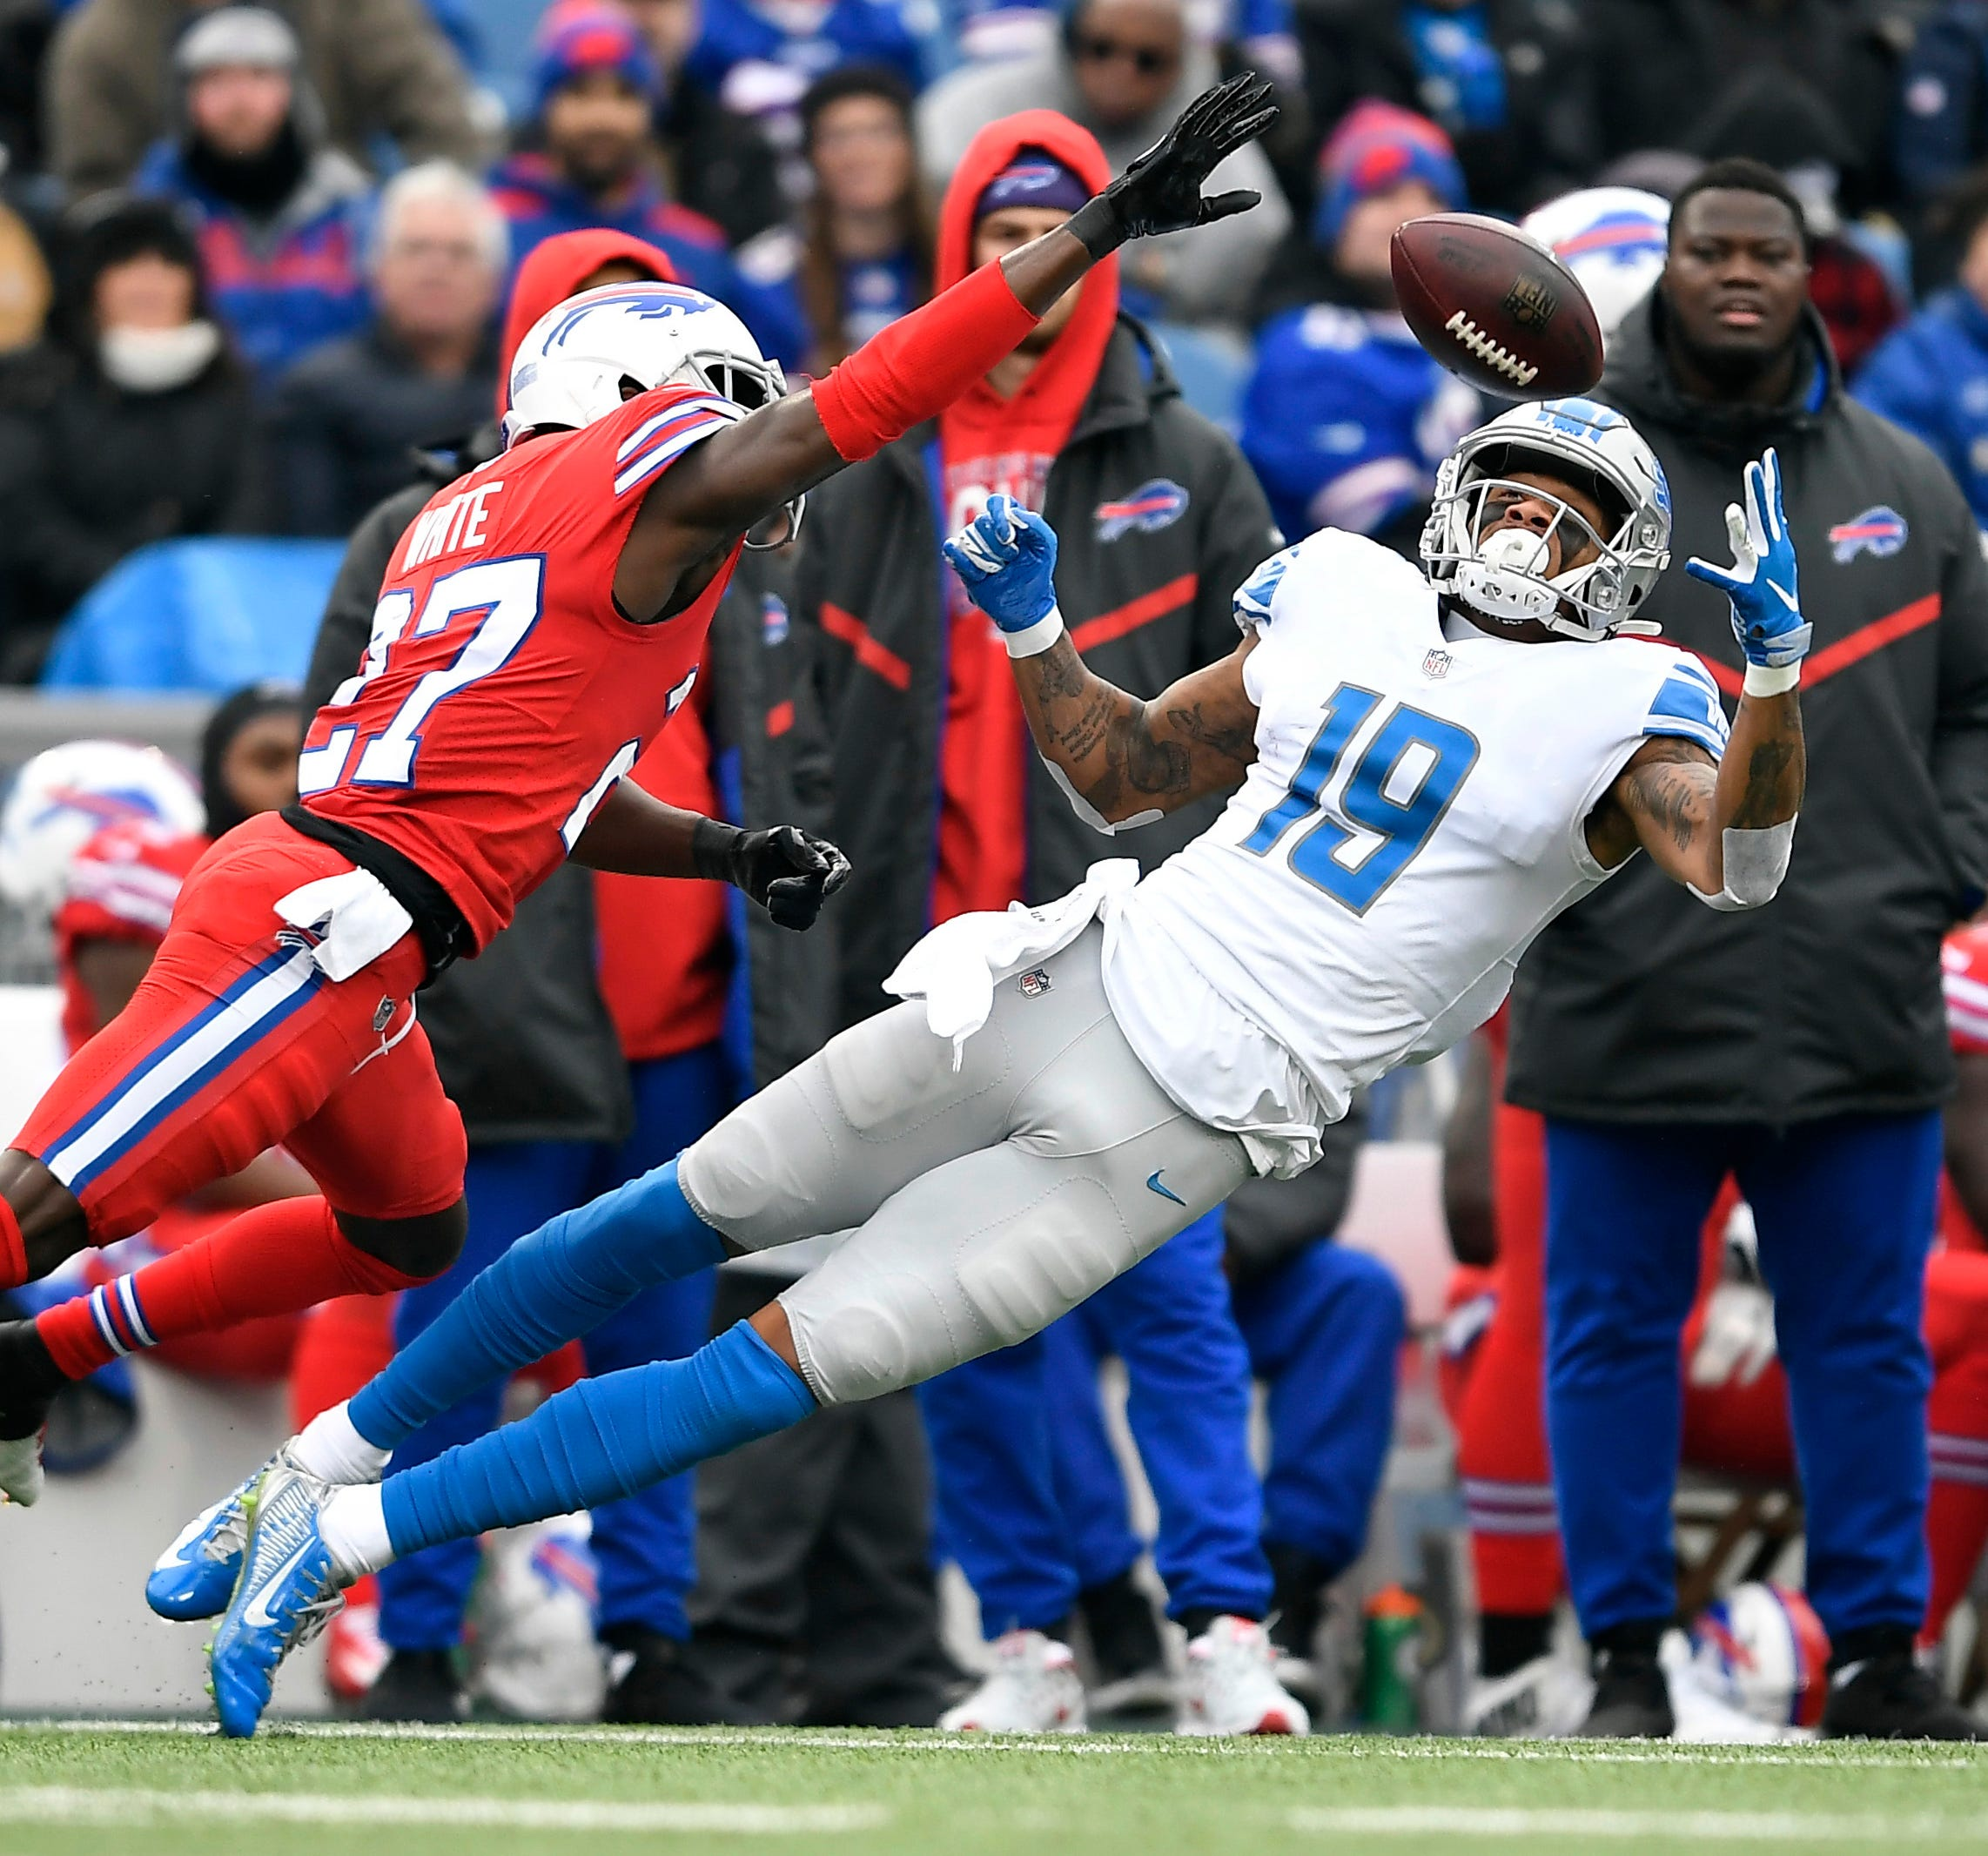 Lions wide receiver Kenny Golladay catches a pass against Bills cornerback Tre'Davious White during the first half Dec. 16, 2018, in Orchard Park, N.Y.